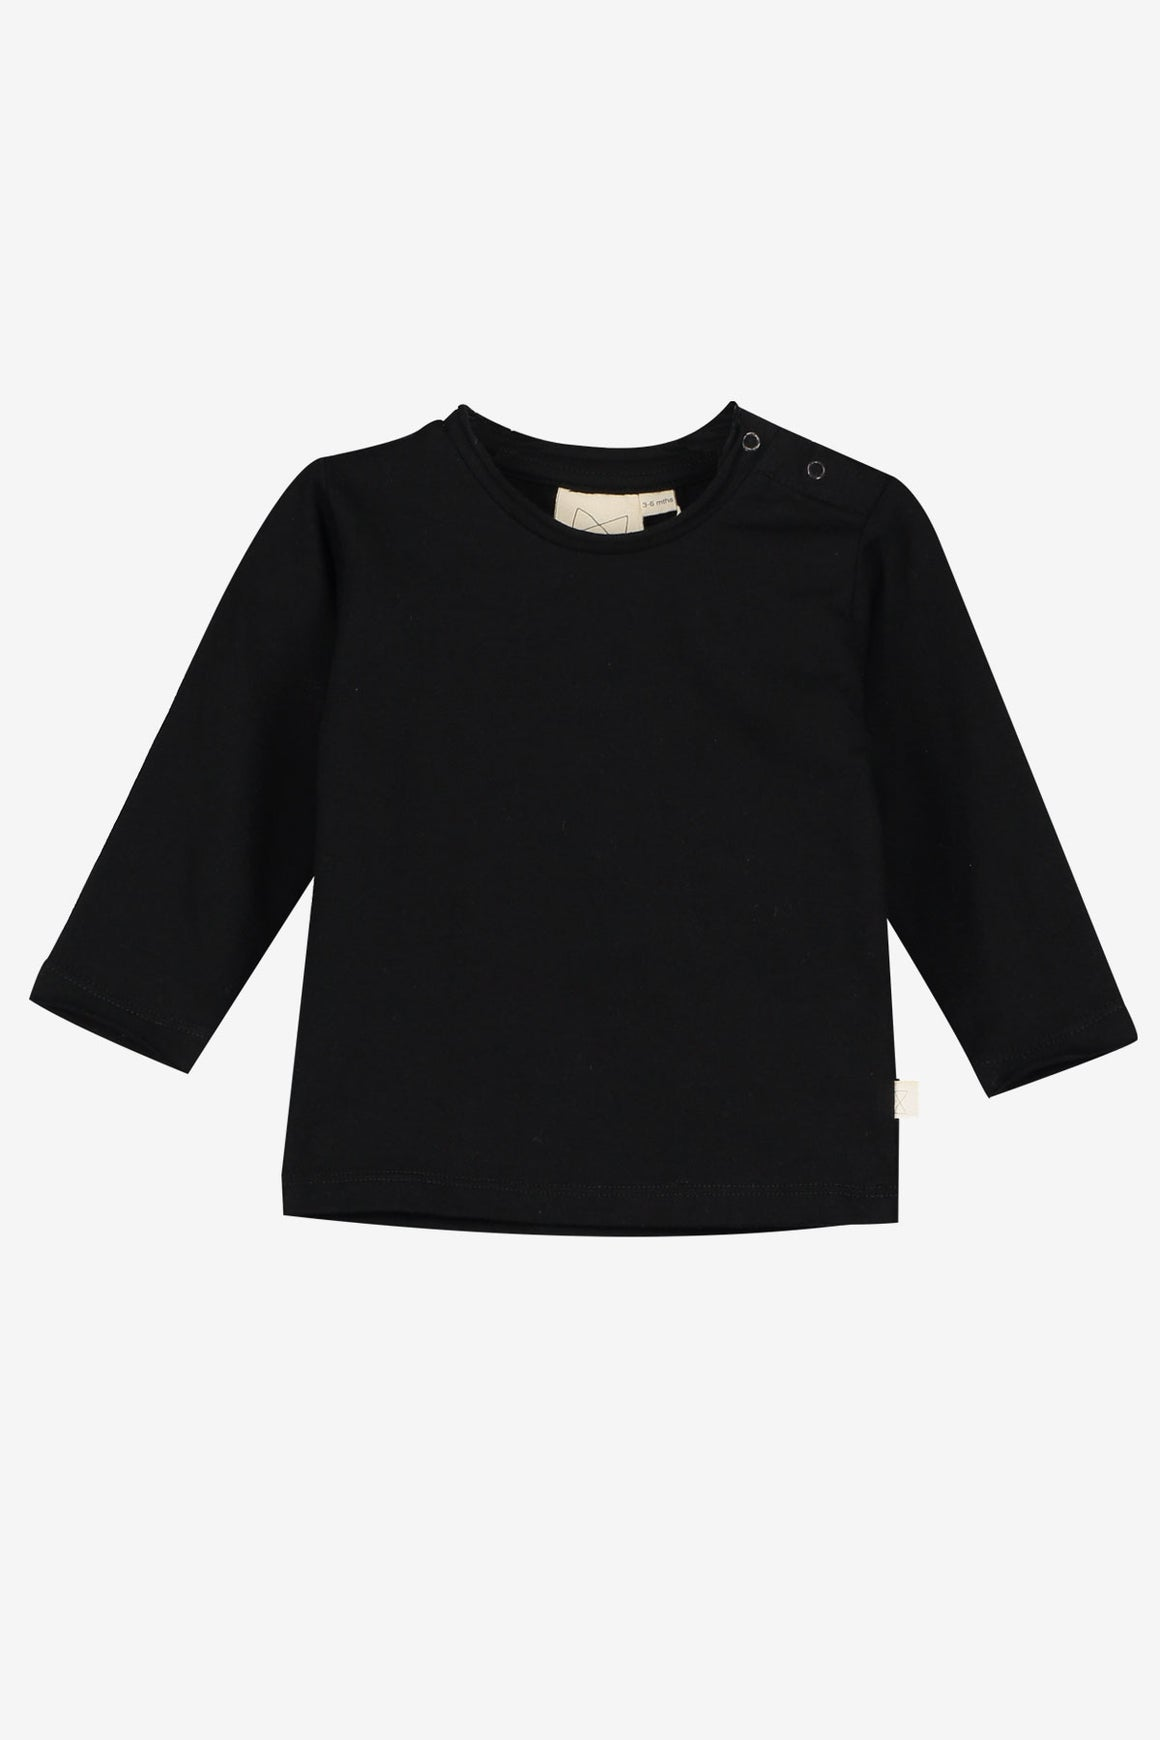 Mini Sibling Baby Top - Black